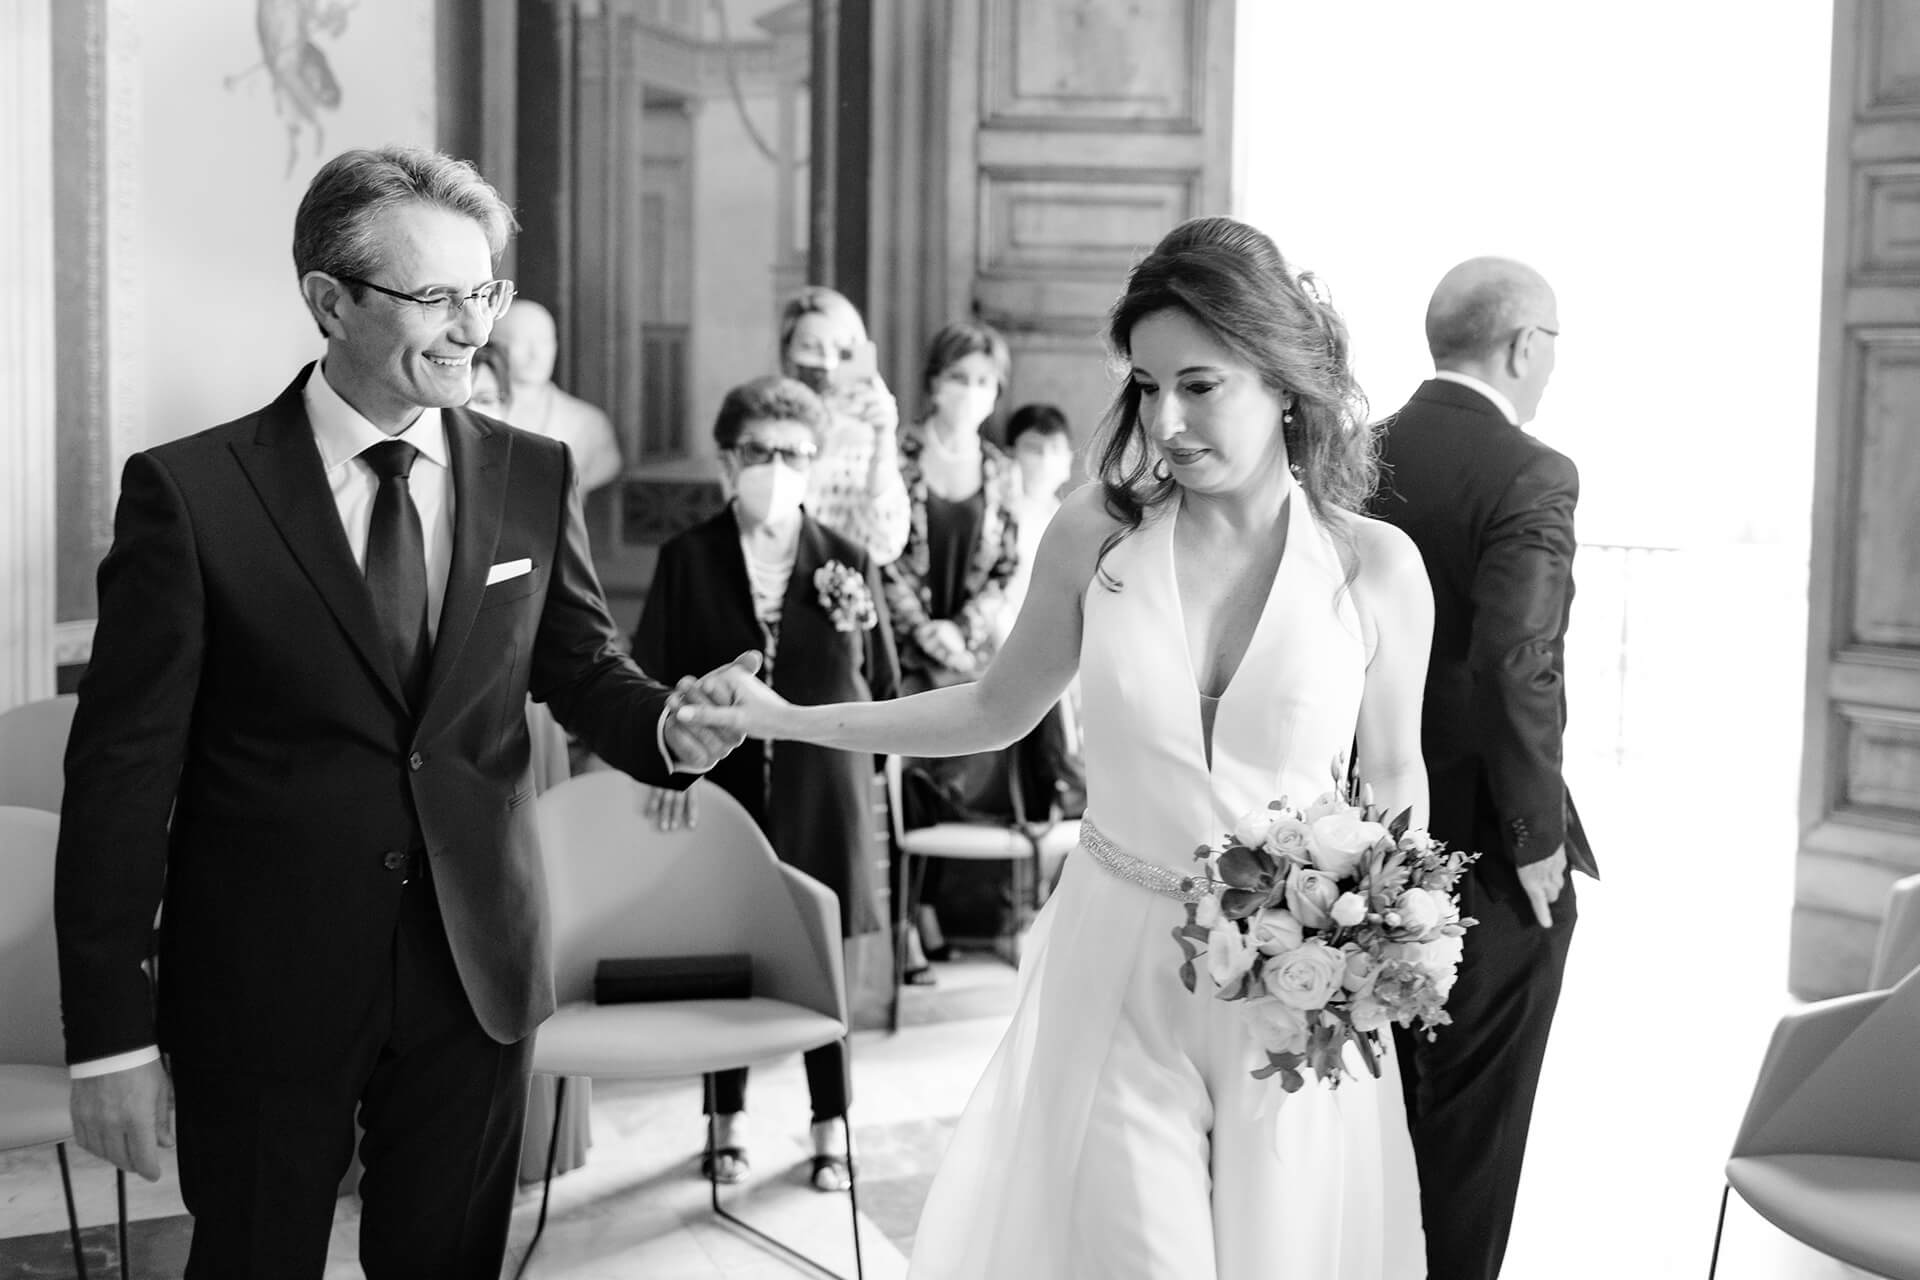 BW Wedding Photographer Italy | The groom welcomes his bride as a true gentle man